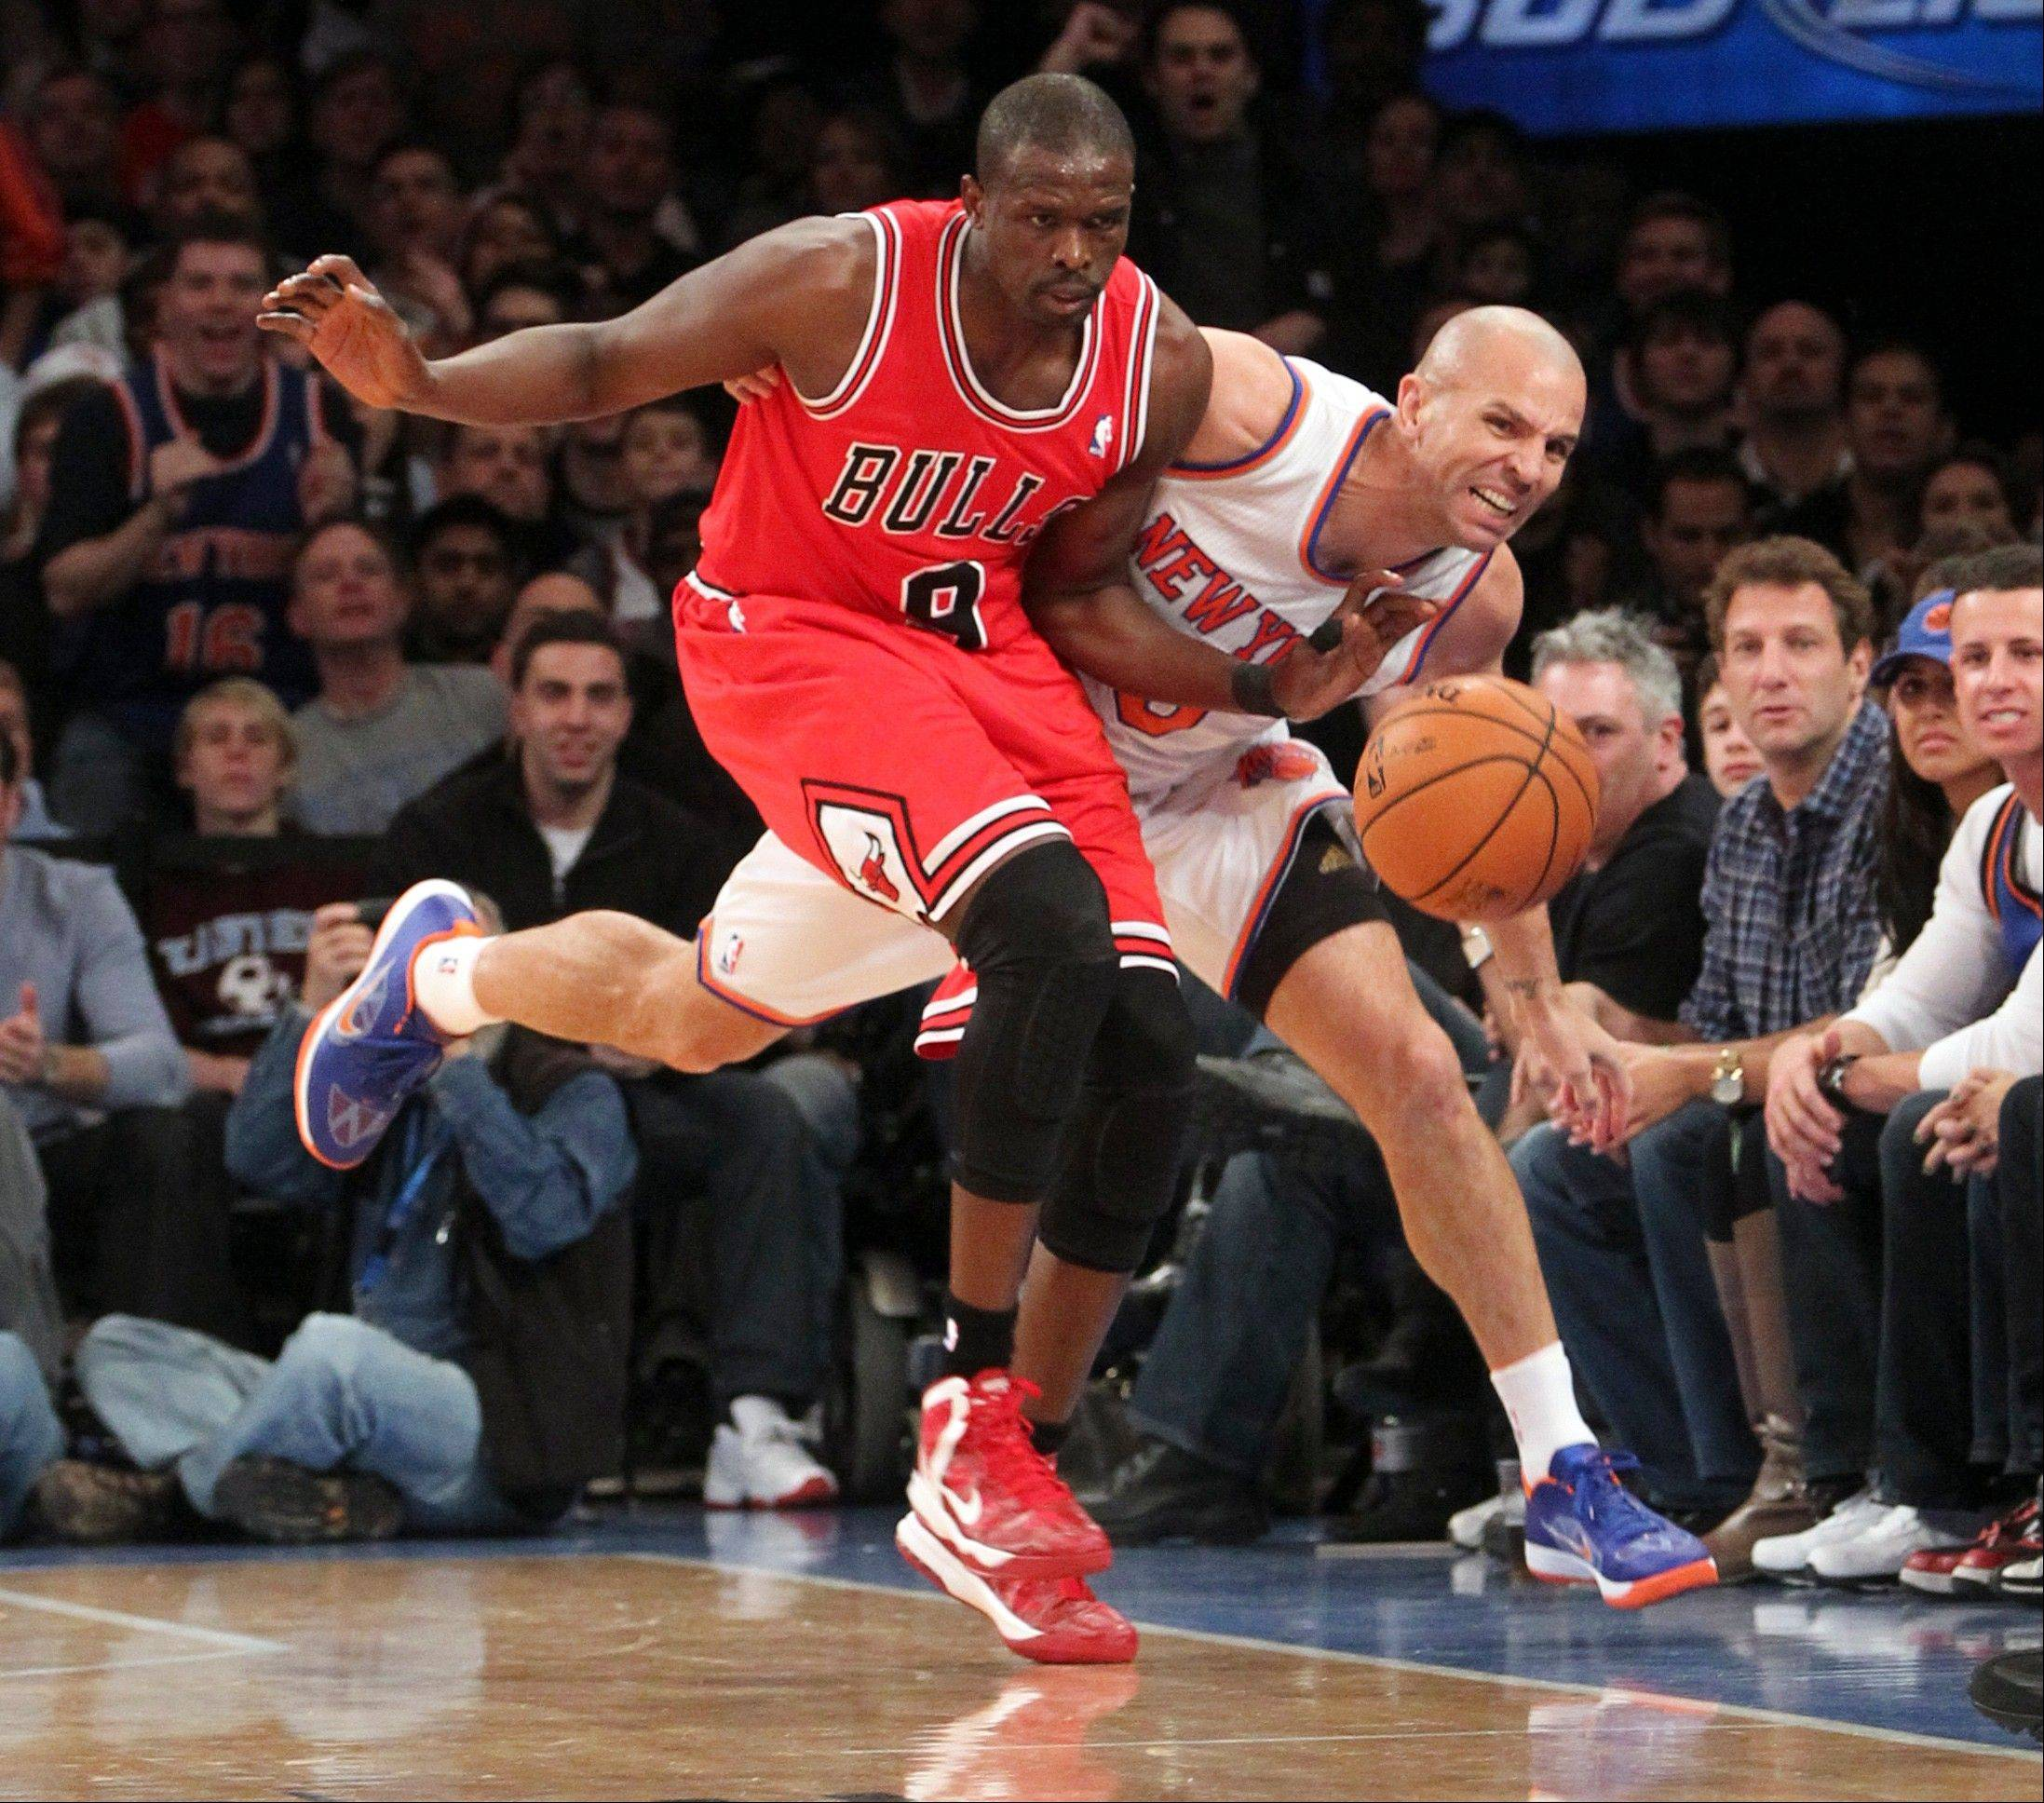 Bulls forward Luol Deng, left, and New York Knicks' Jason Kidd chase a loose ball Friday during the first half at Madison Square Garden in New York.